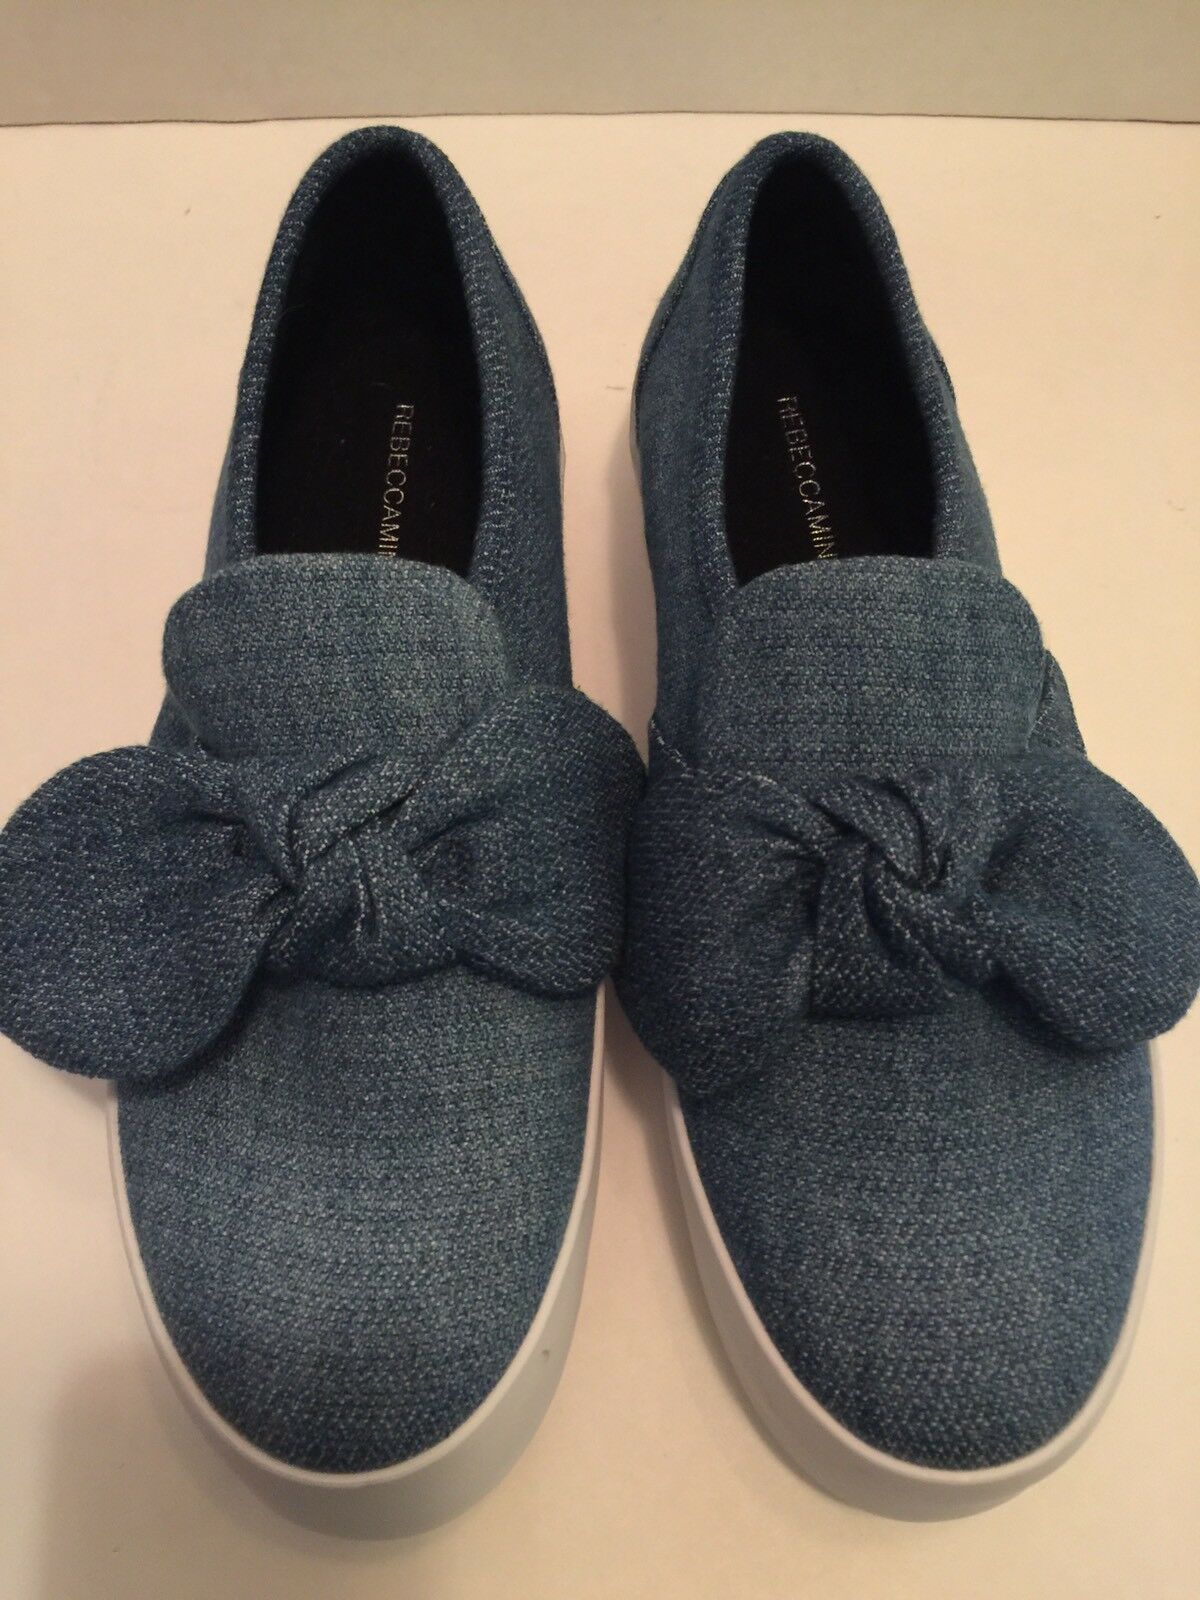 Rebecca-Minkoff-Stacey-bluee Denim-Bow-Platform-Sneakers- shoes Size-8.5 M (e8)